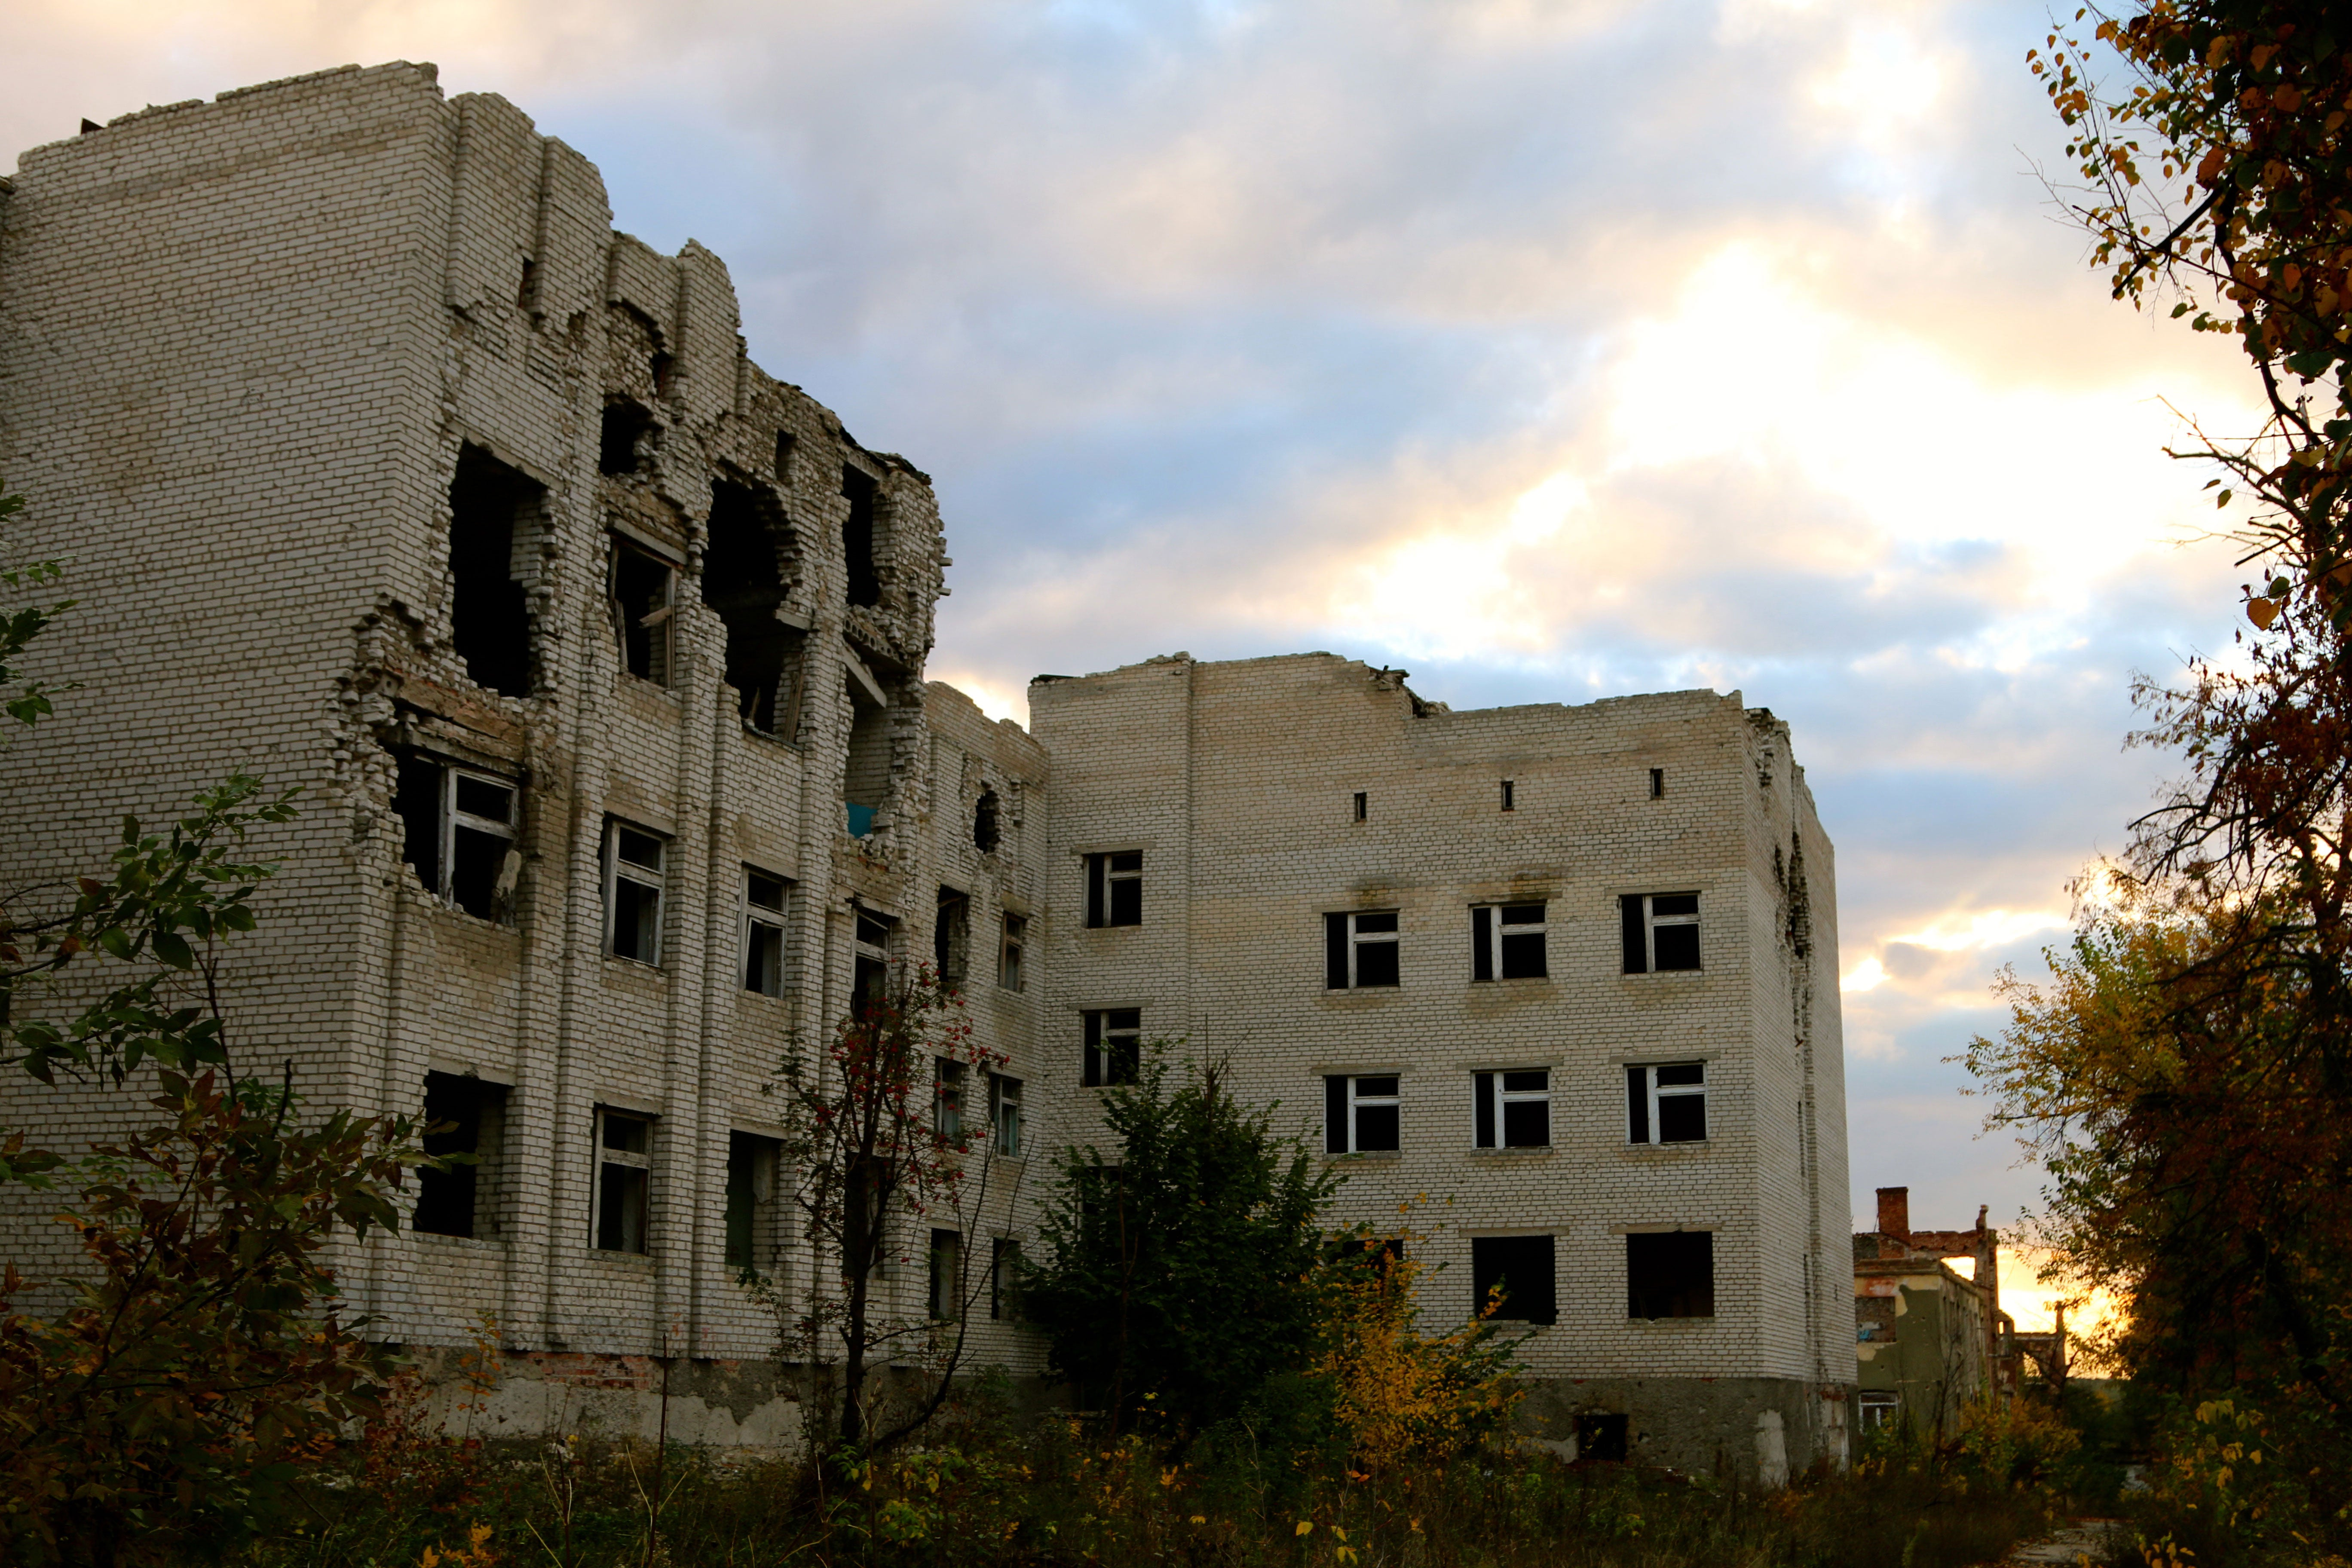 Many areas along the front lines in eastern Ukraine lie in ruins after more than two and a half years of war.